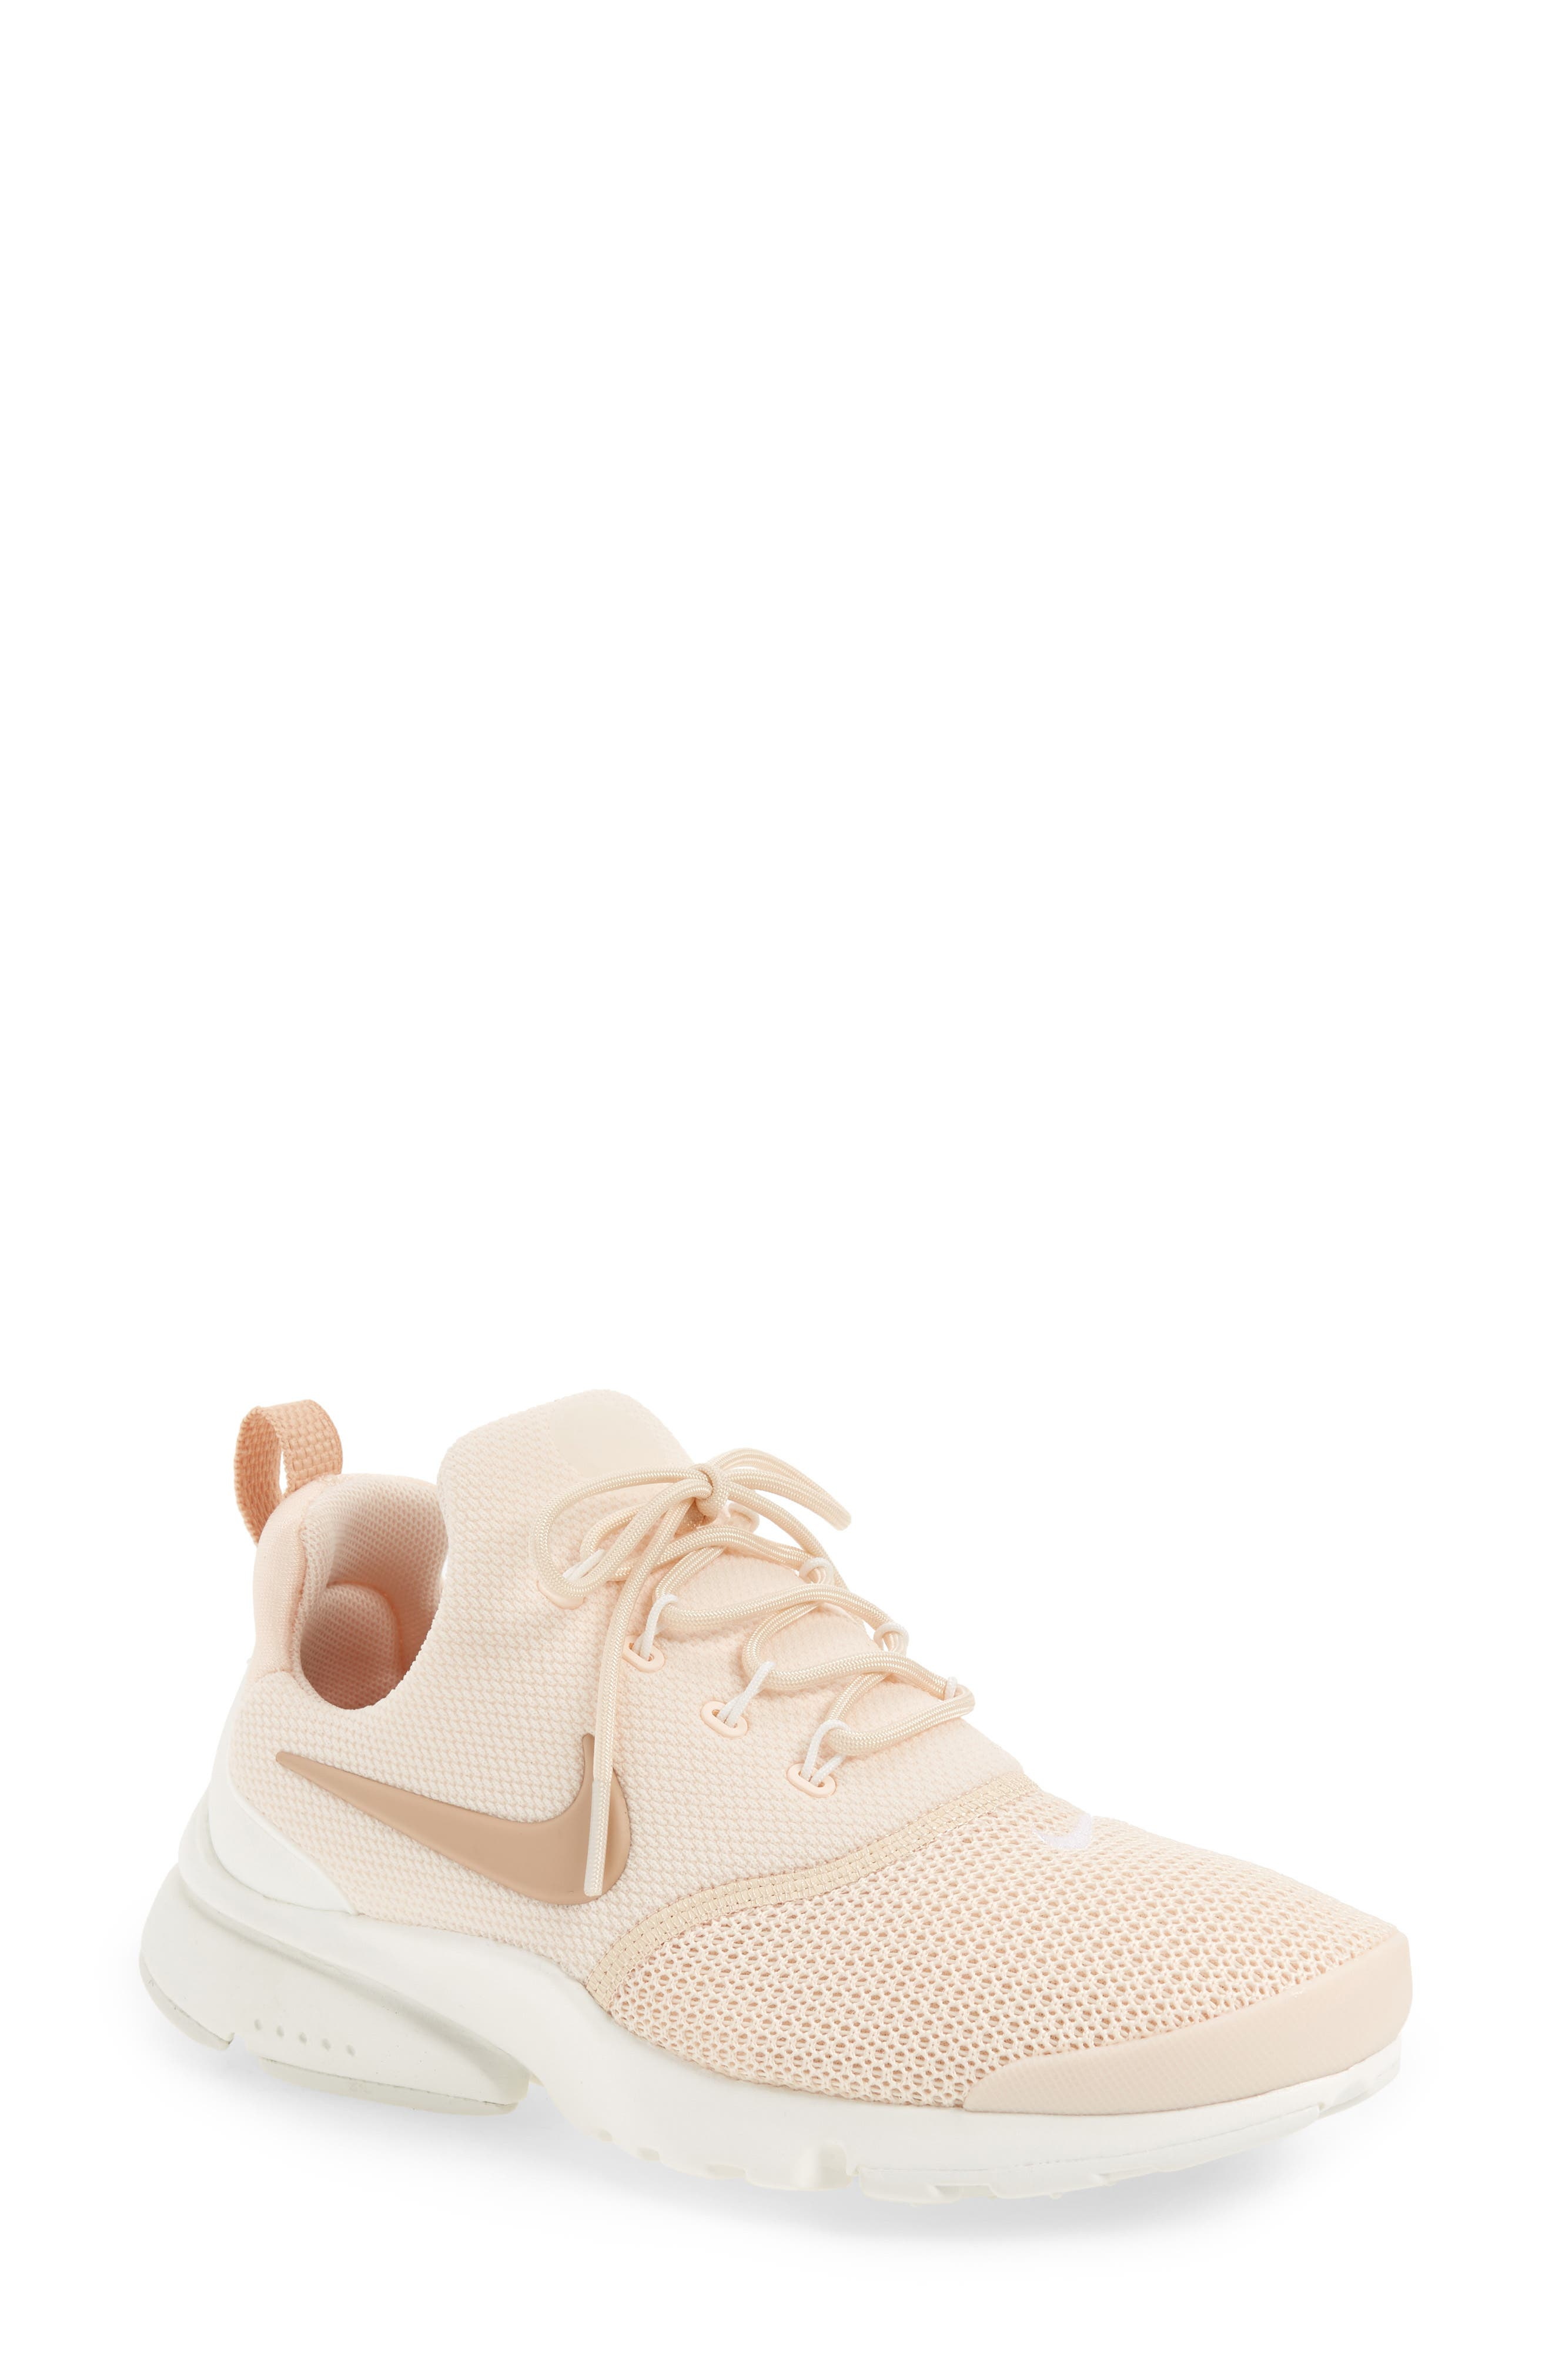 Presto Fly Sneaker,                             Main thumbnail 1, color,                             Guava Ice/ Beige/ Summit White